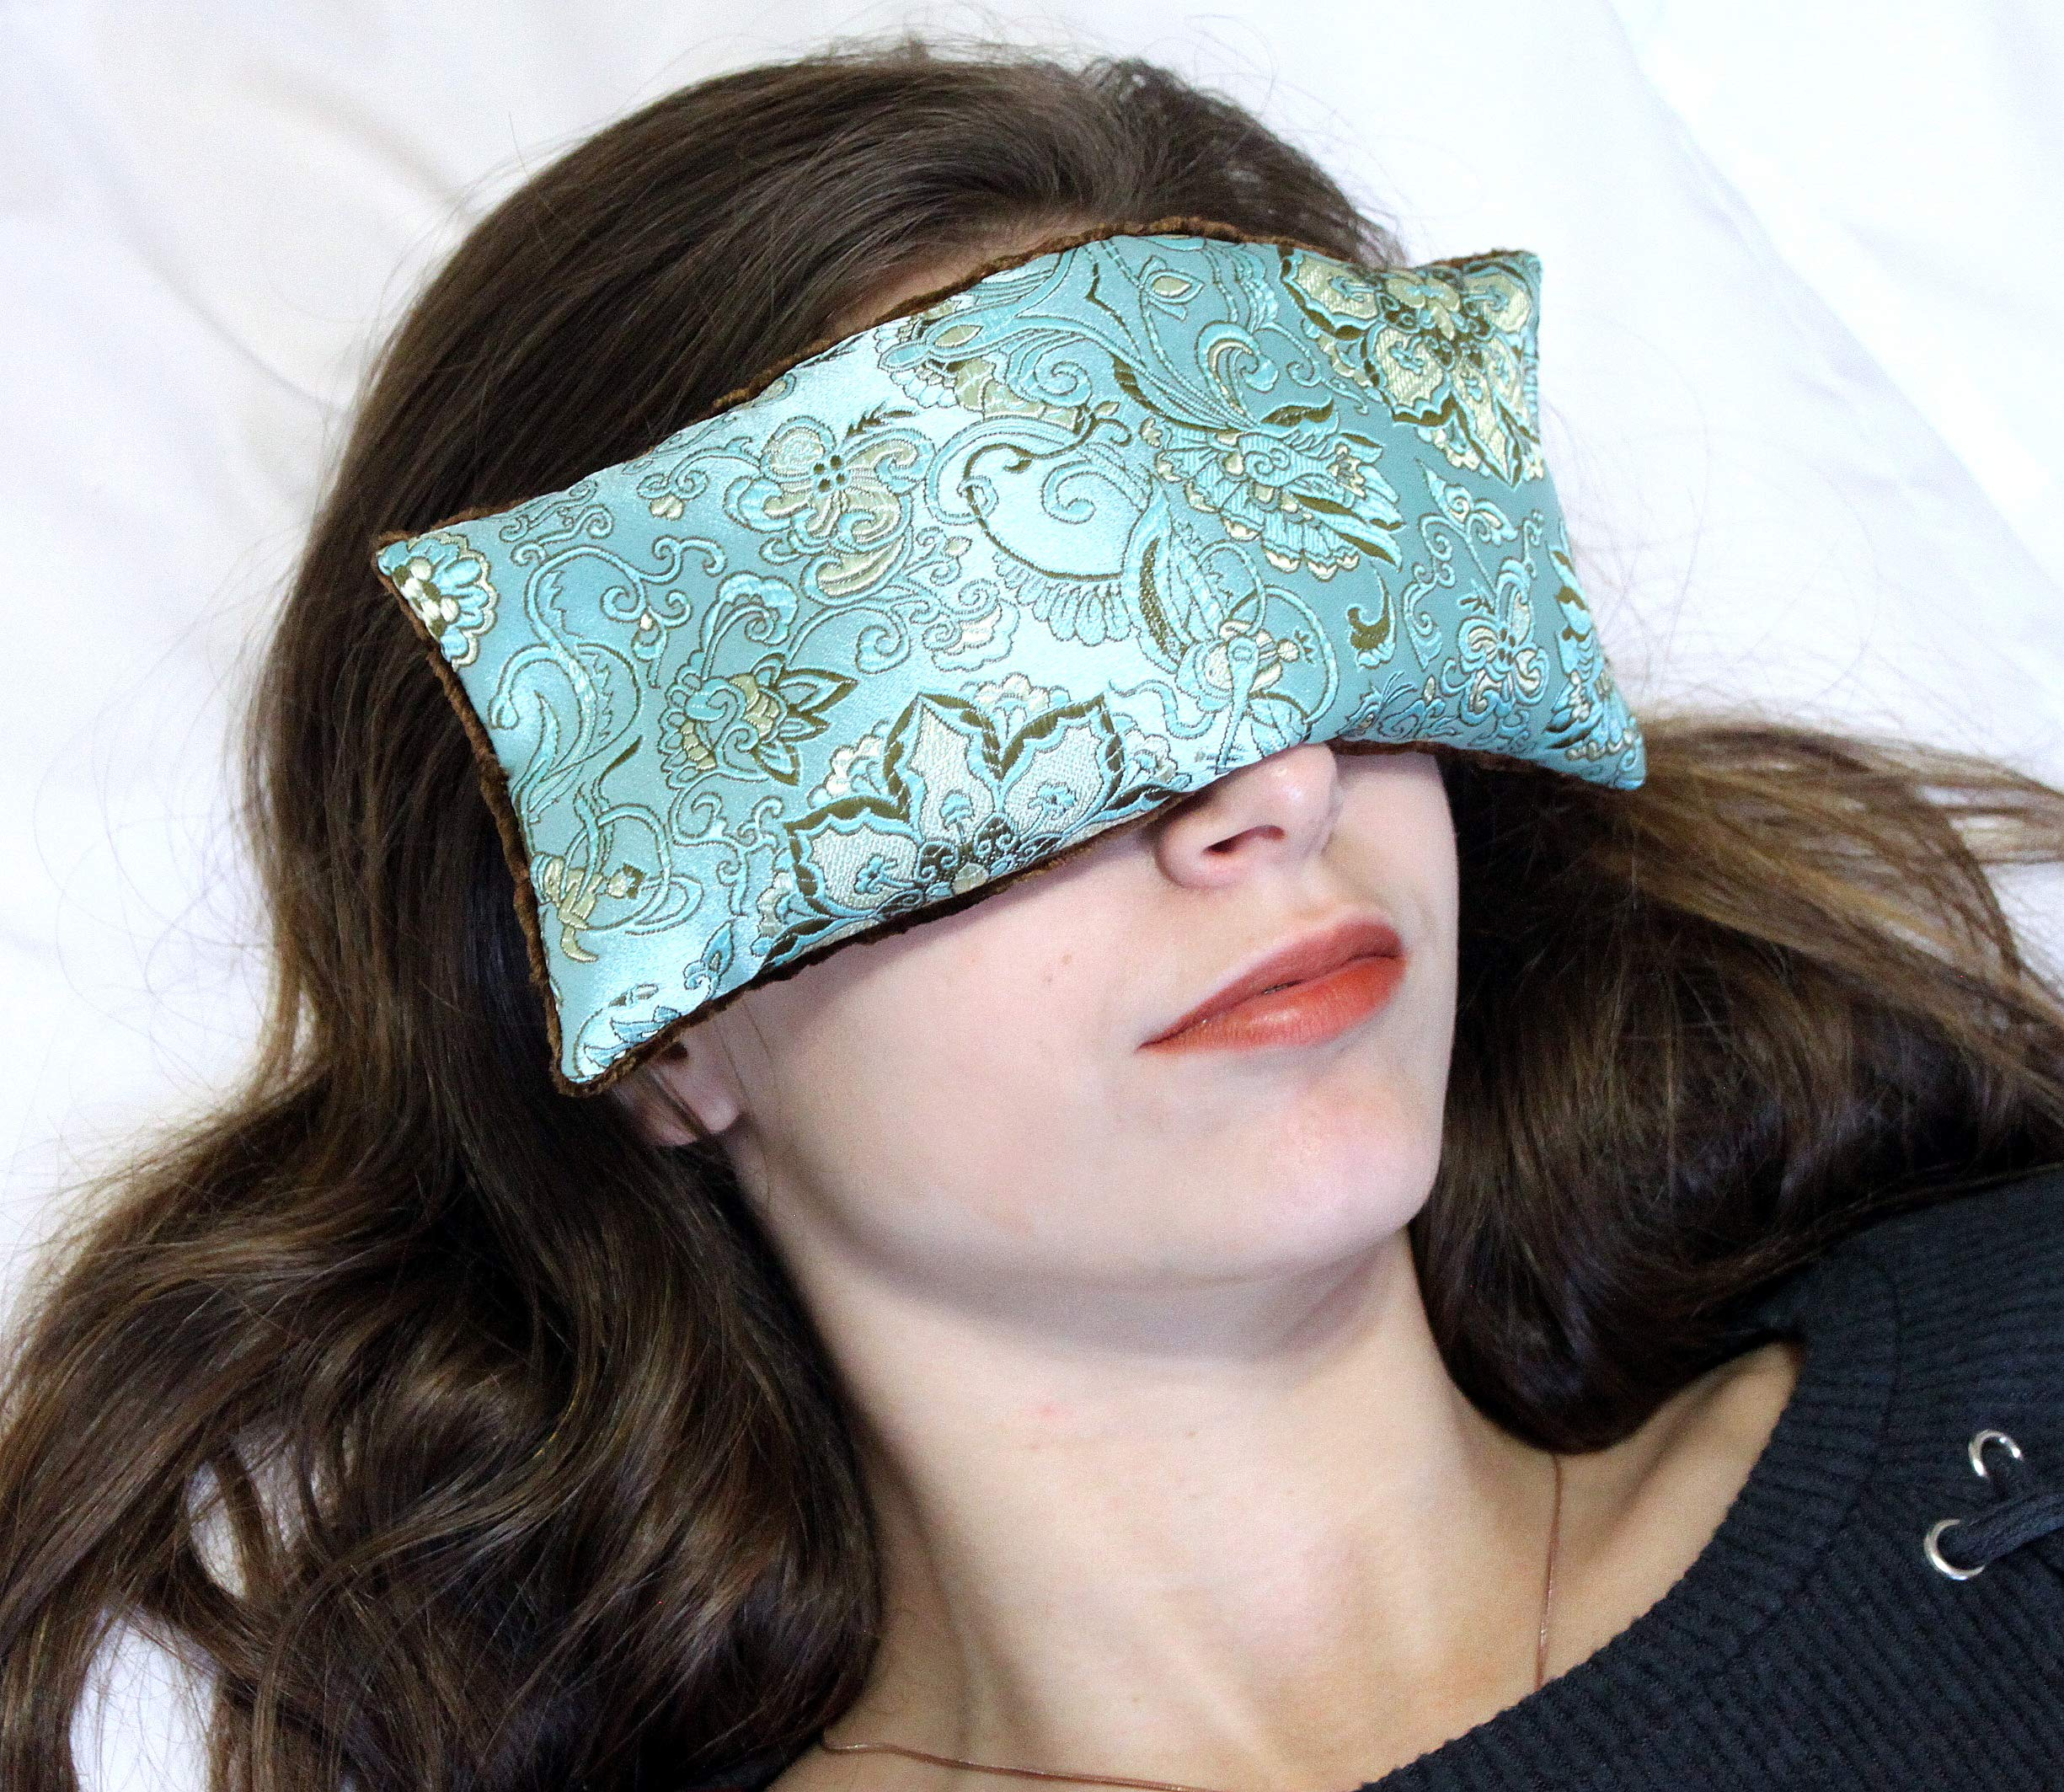 Candi Andi Handmade Eye Pillow | Stress, Anxiety, Migraine Relief, Sleep Aid, Aromatherapy | Hot/Cold | Flax Seed Filled | Lavender Scented | Satin Brocade & Crushed Velvet | Blue Lagoon - TEPL-BL by Candi Andi